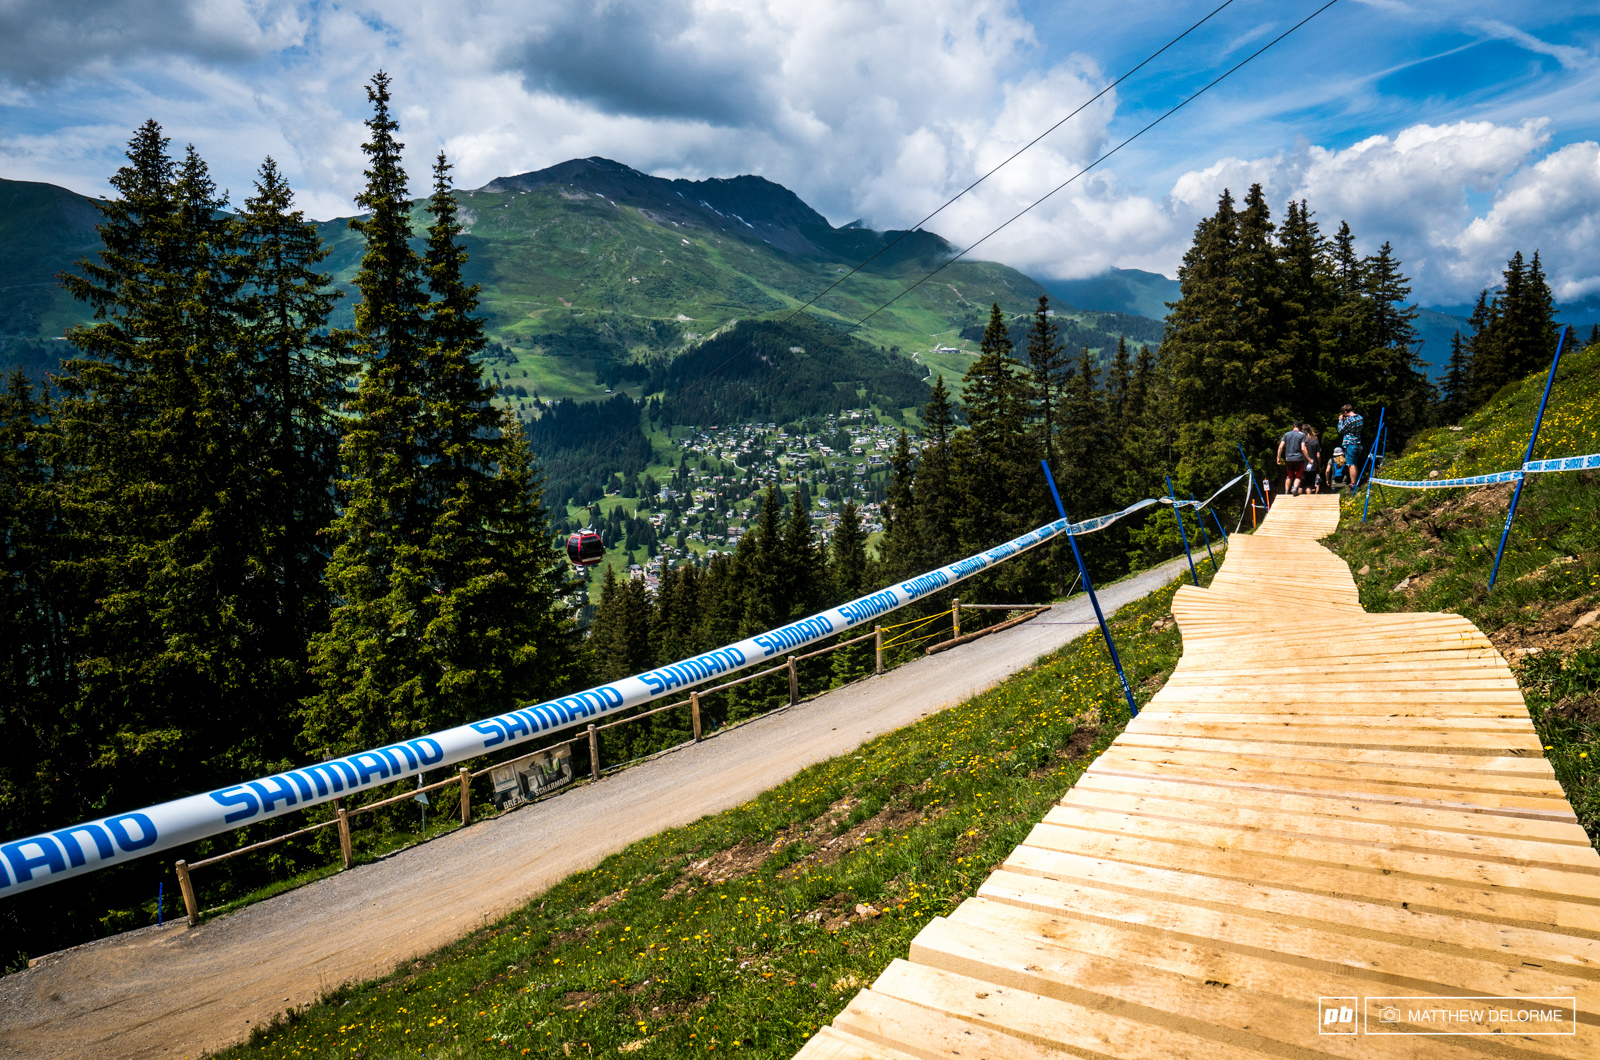 Another World Cup track falls prey to Bikeparkification. Things are looking rather smooth compared to last year.